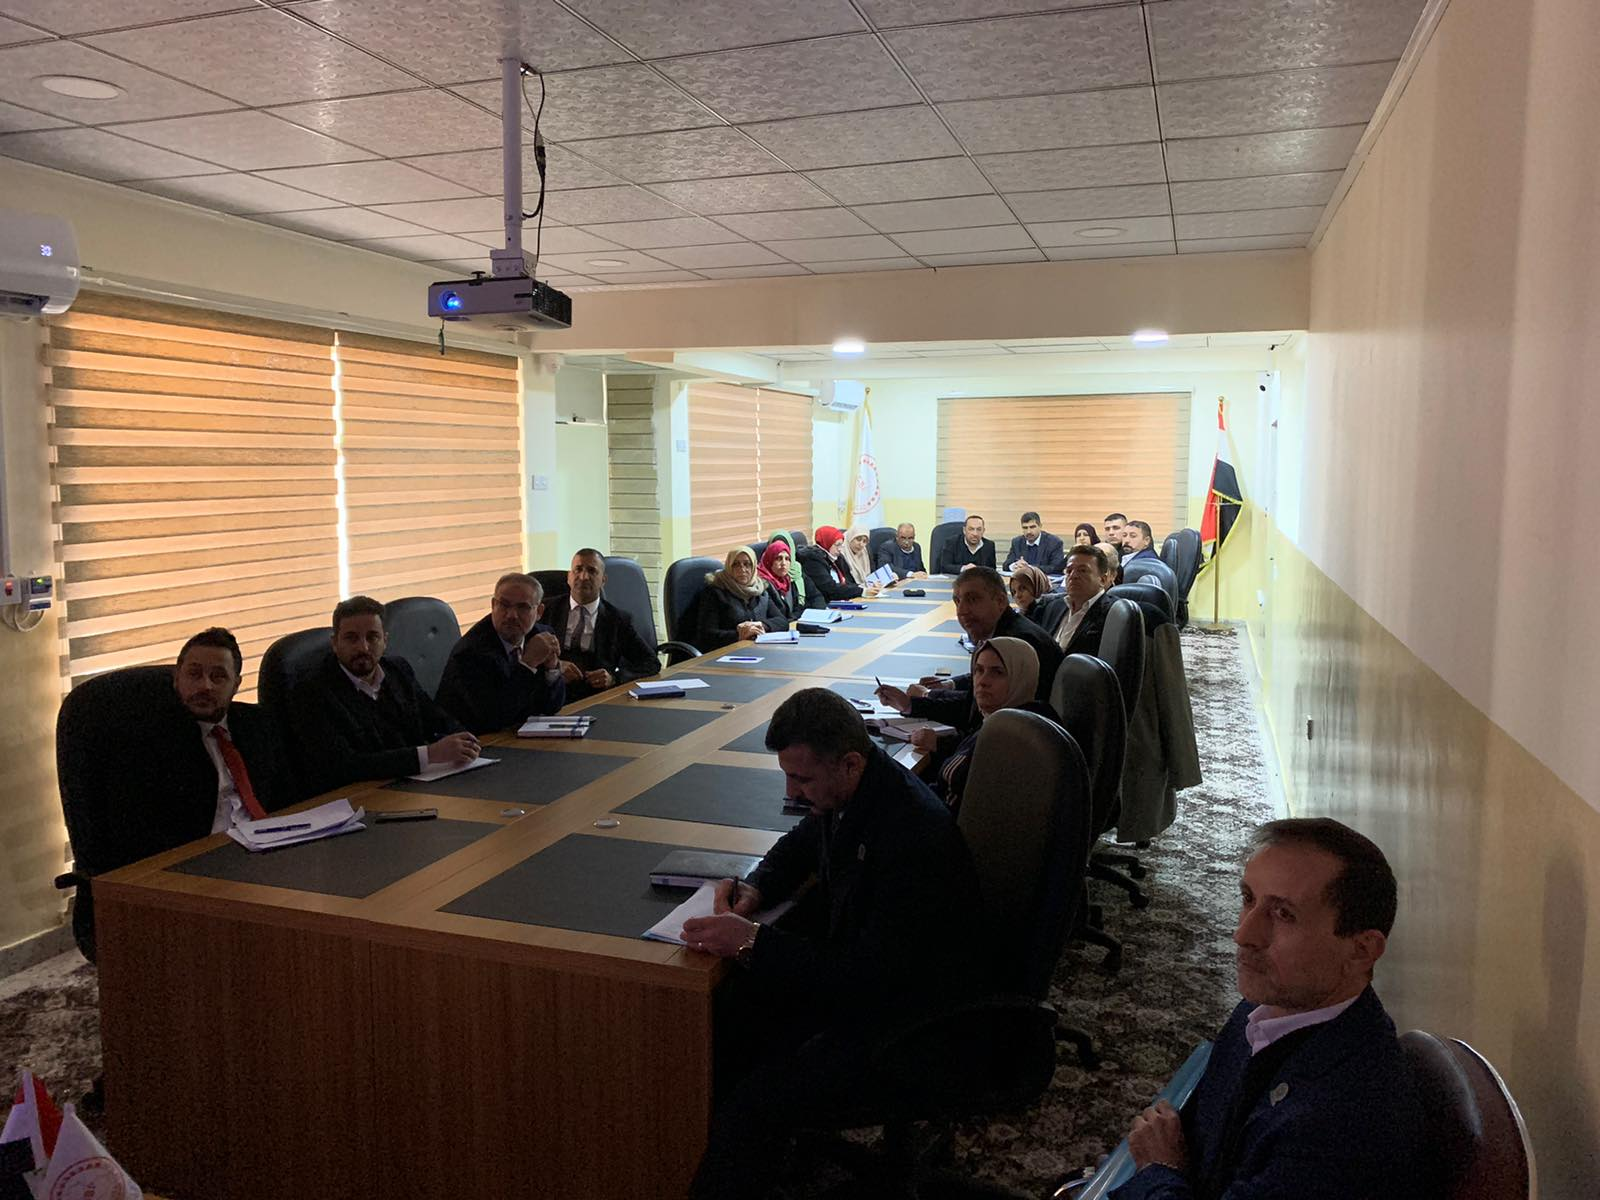 The Mosul branch organizes an introductory lecture to manage bank risks File-157942047985594